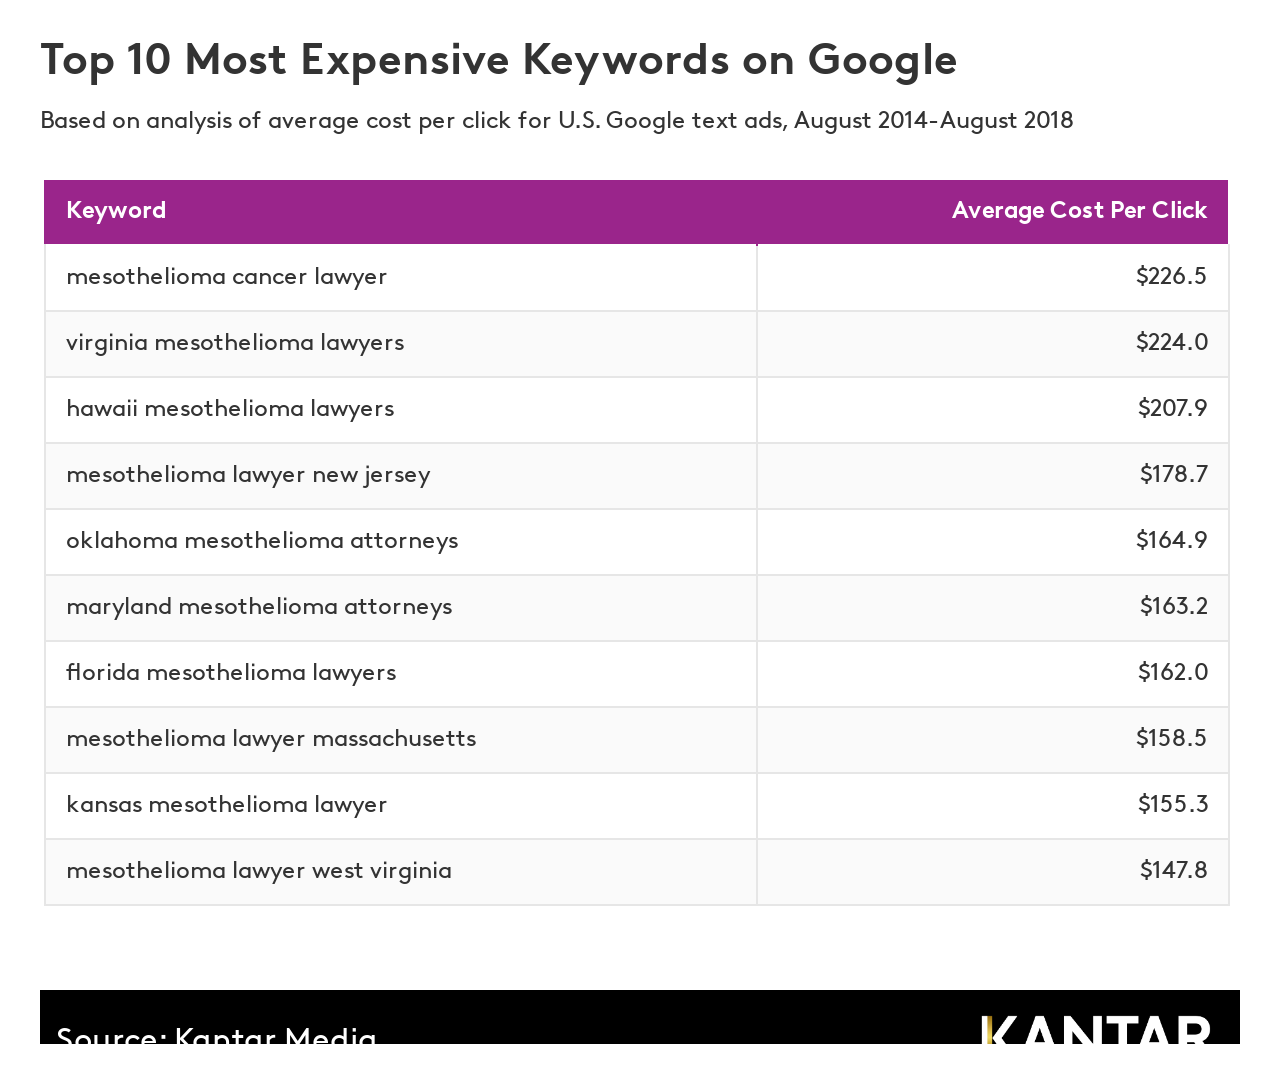 Top 10 most expensive keywords on Google